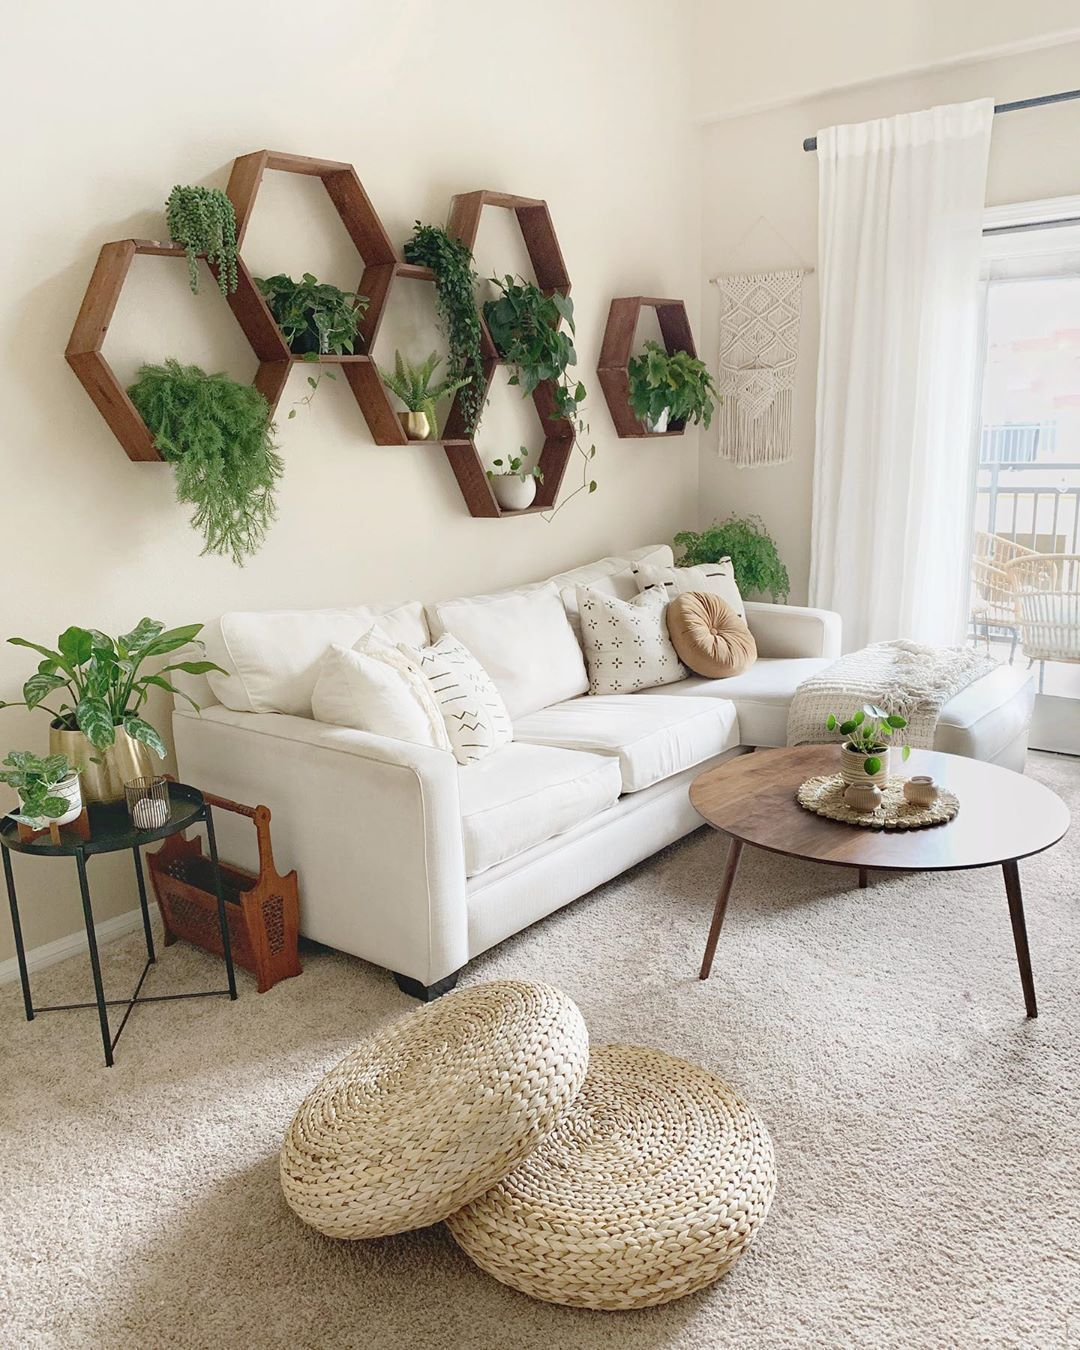 Find out Where to Buy Every Single Thing in This Plant Filled Bohemian